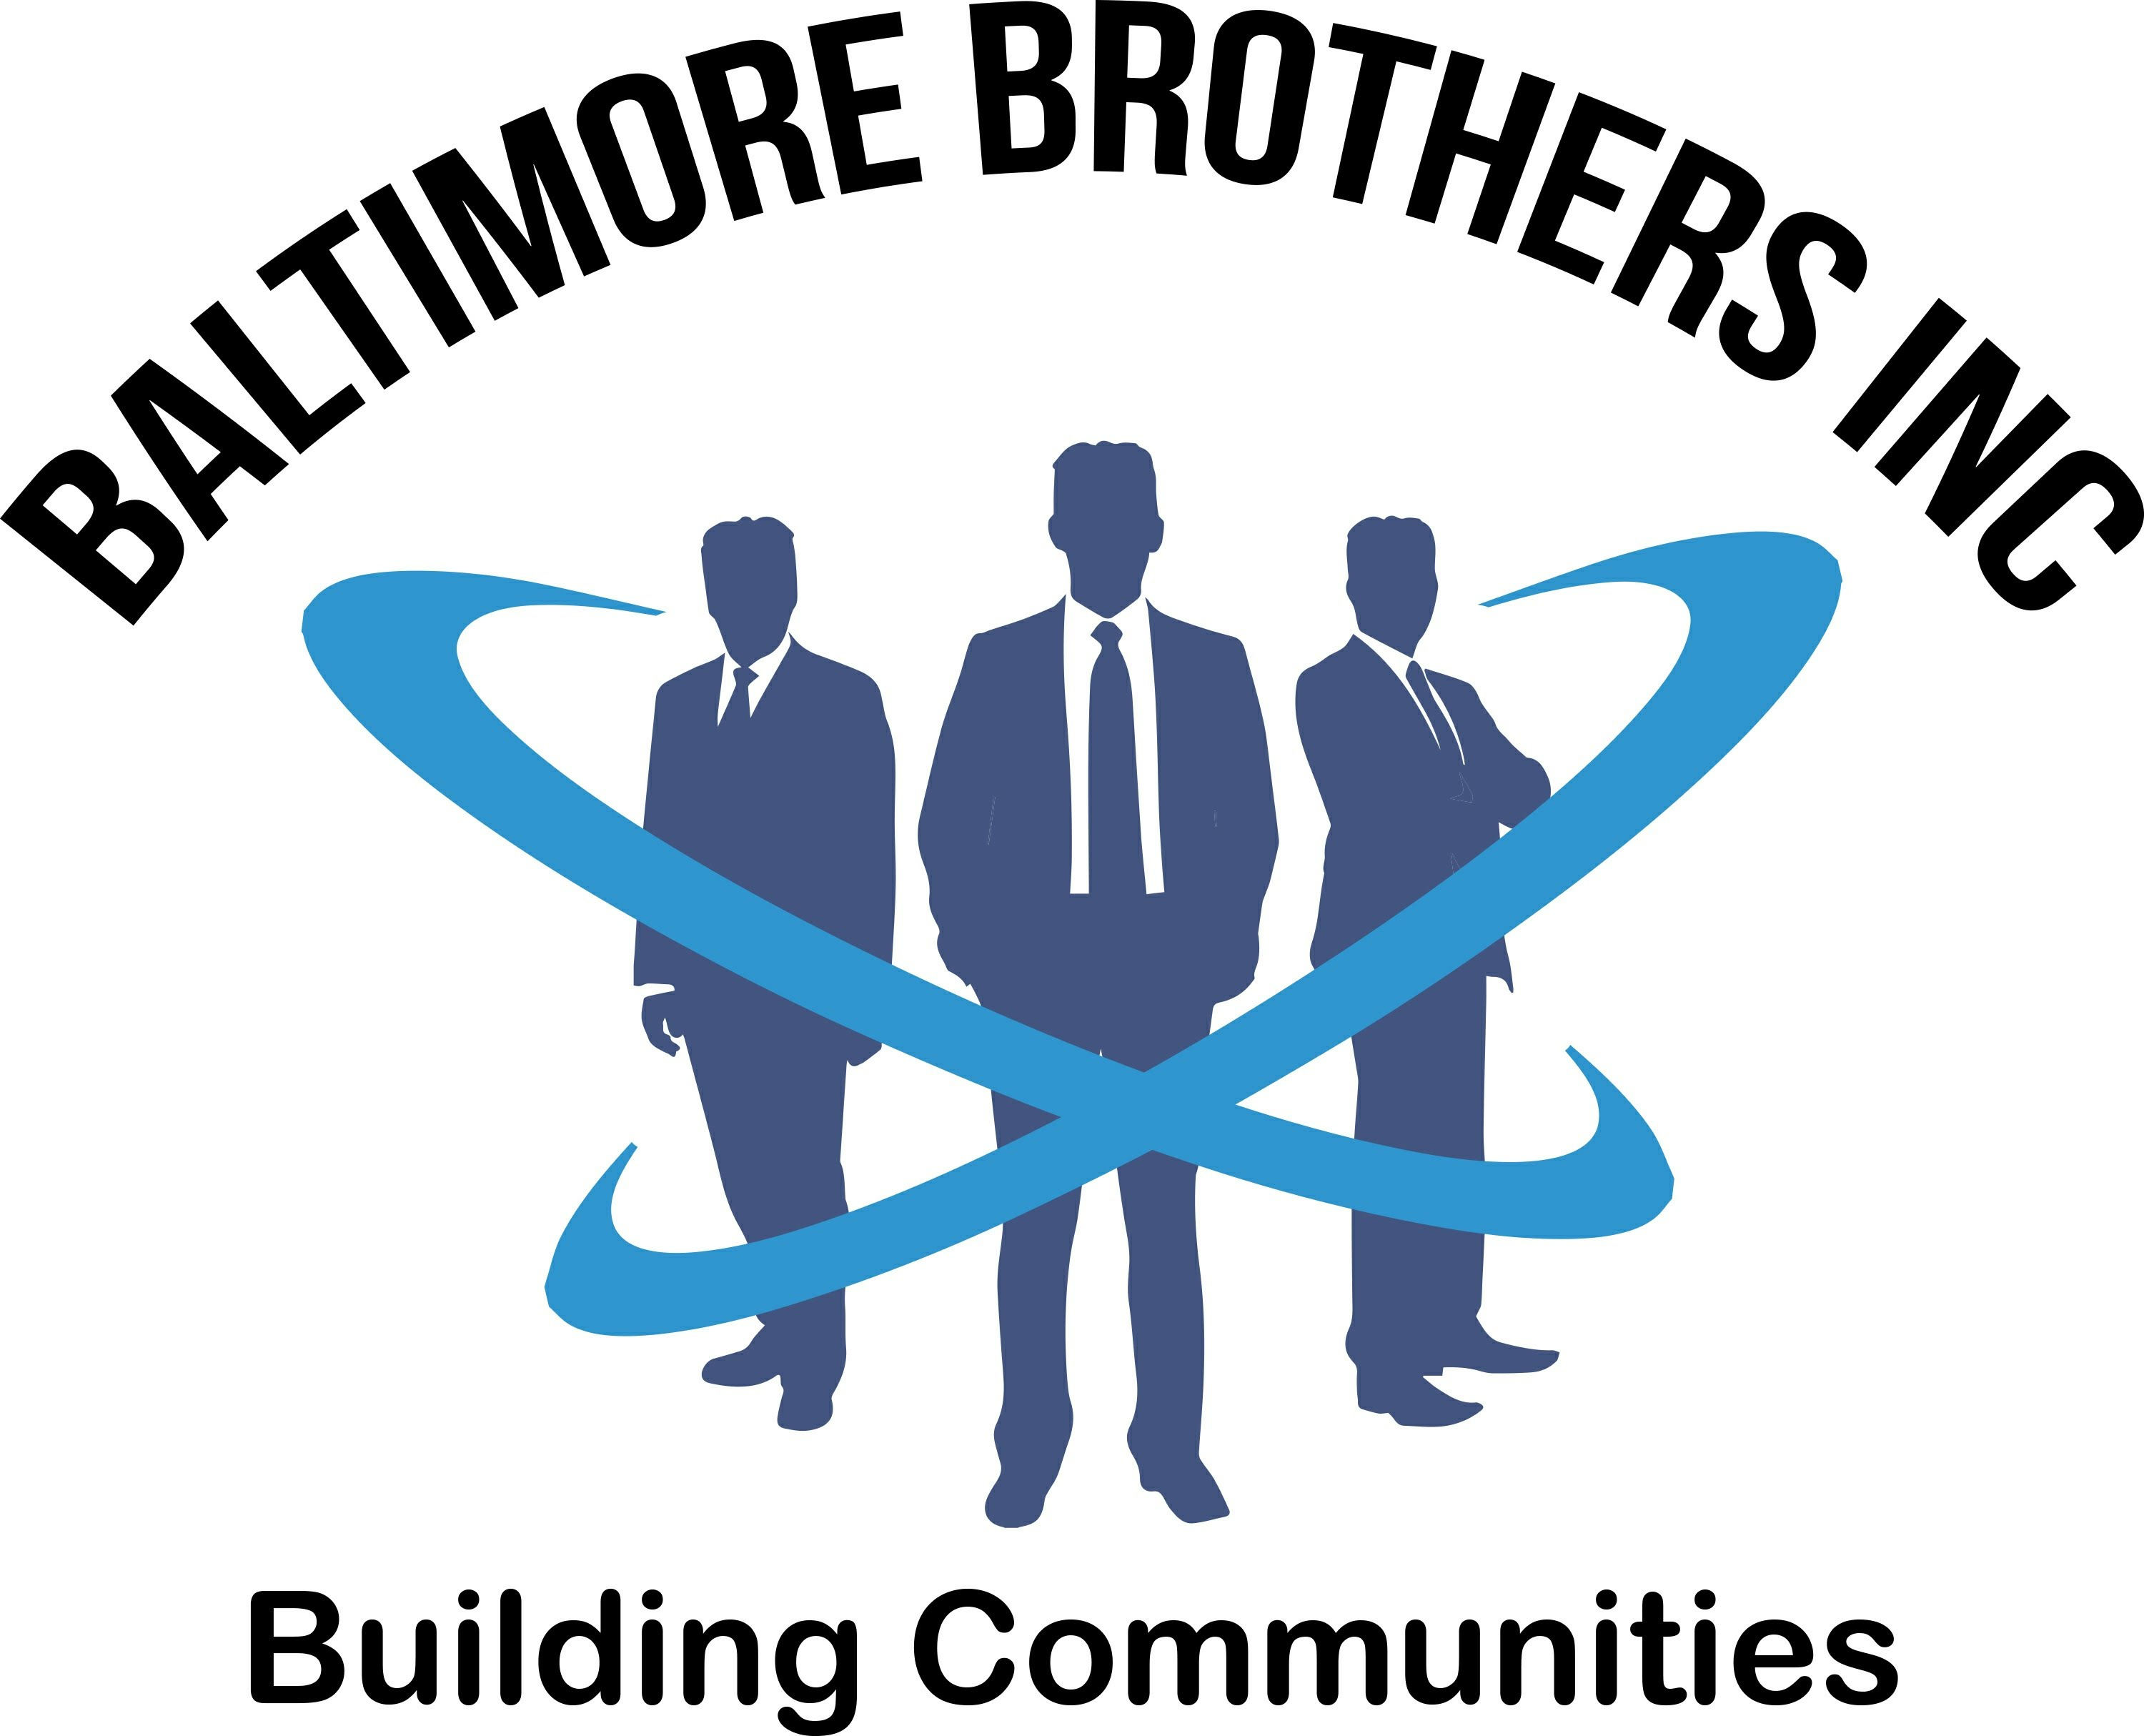 President of Baltimore Brothers Inc